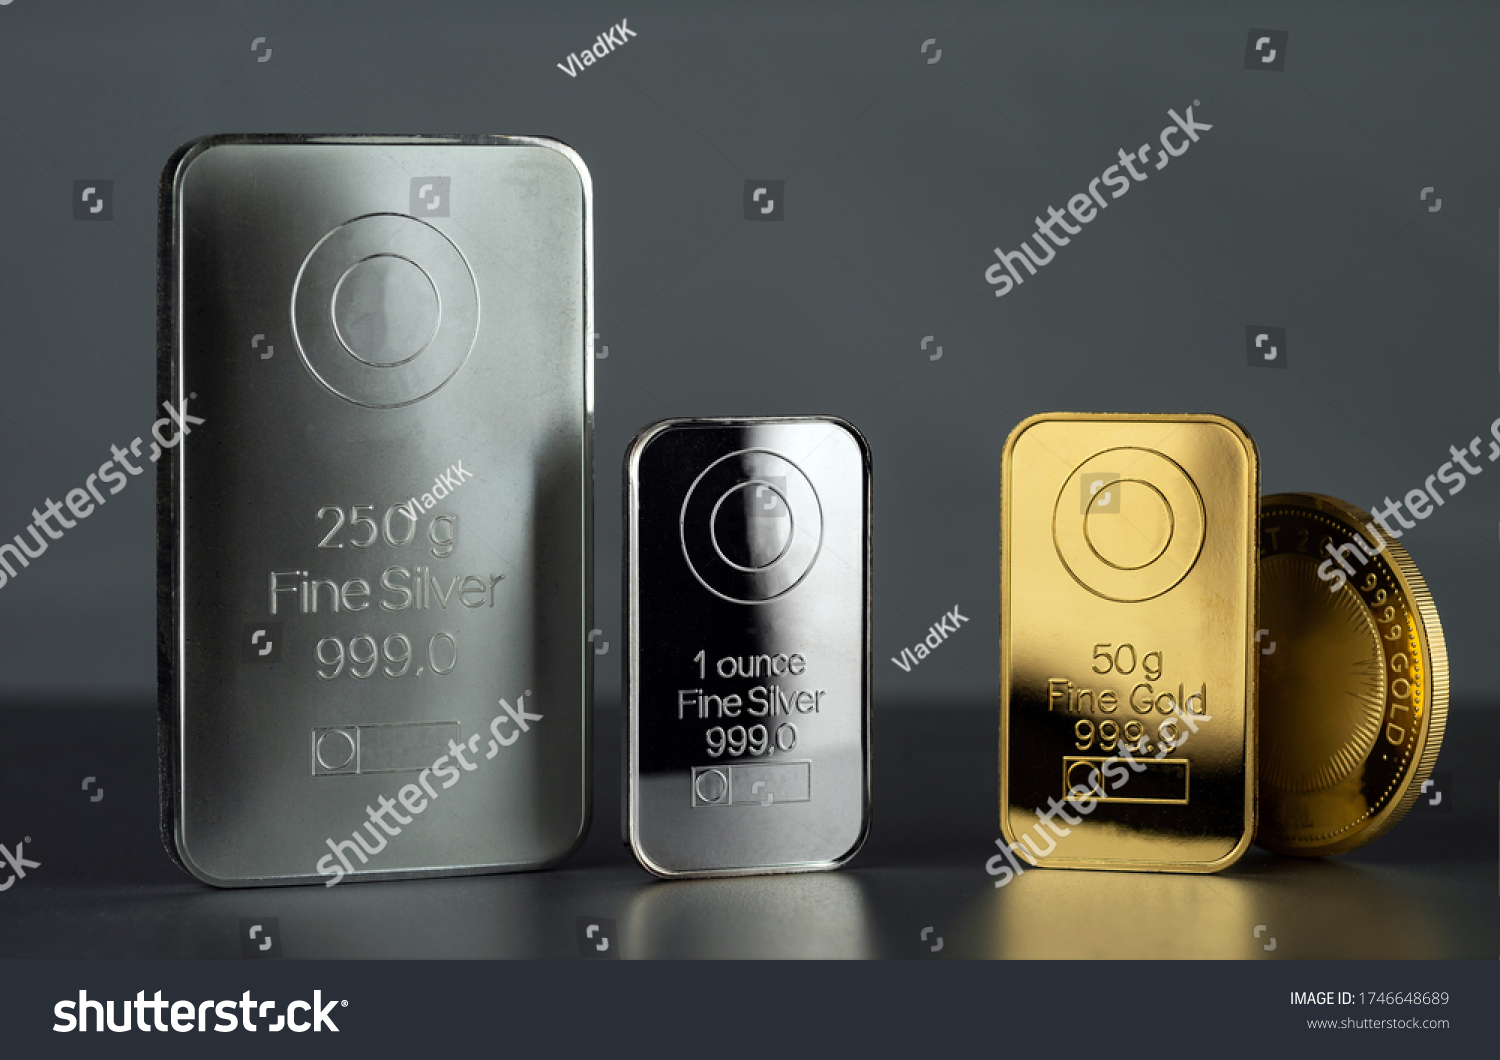 Silver and gold bars and coin on a dark background. #1746648689